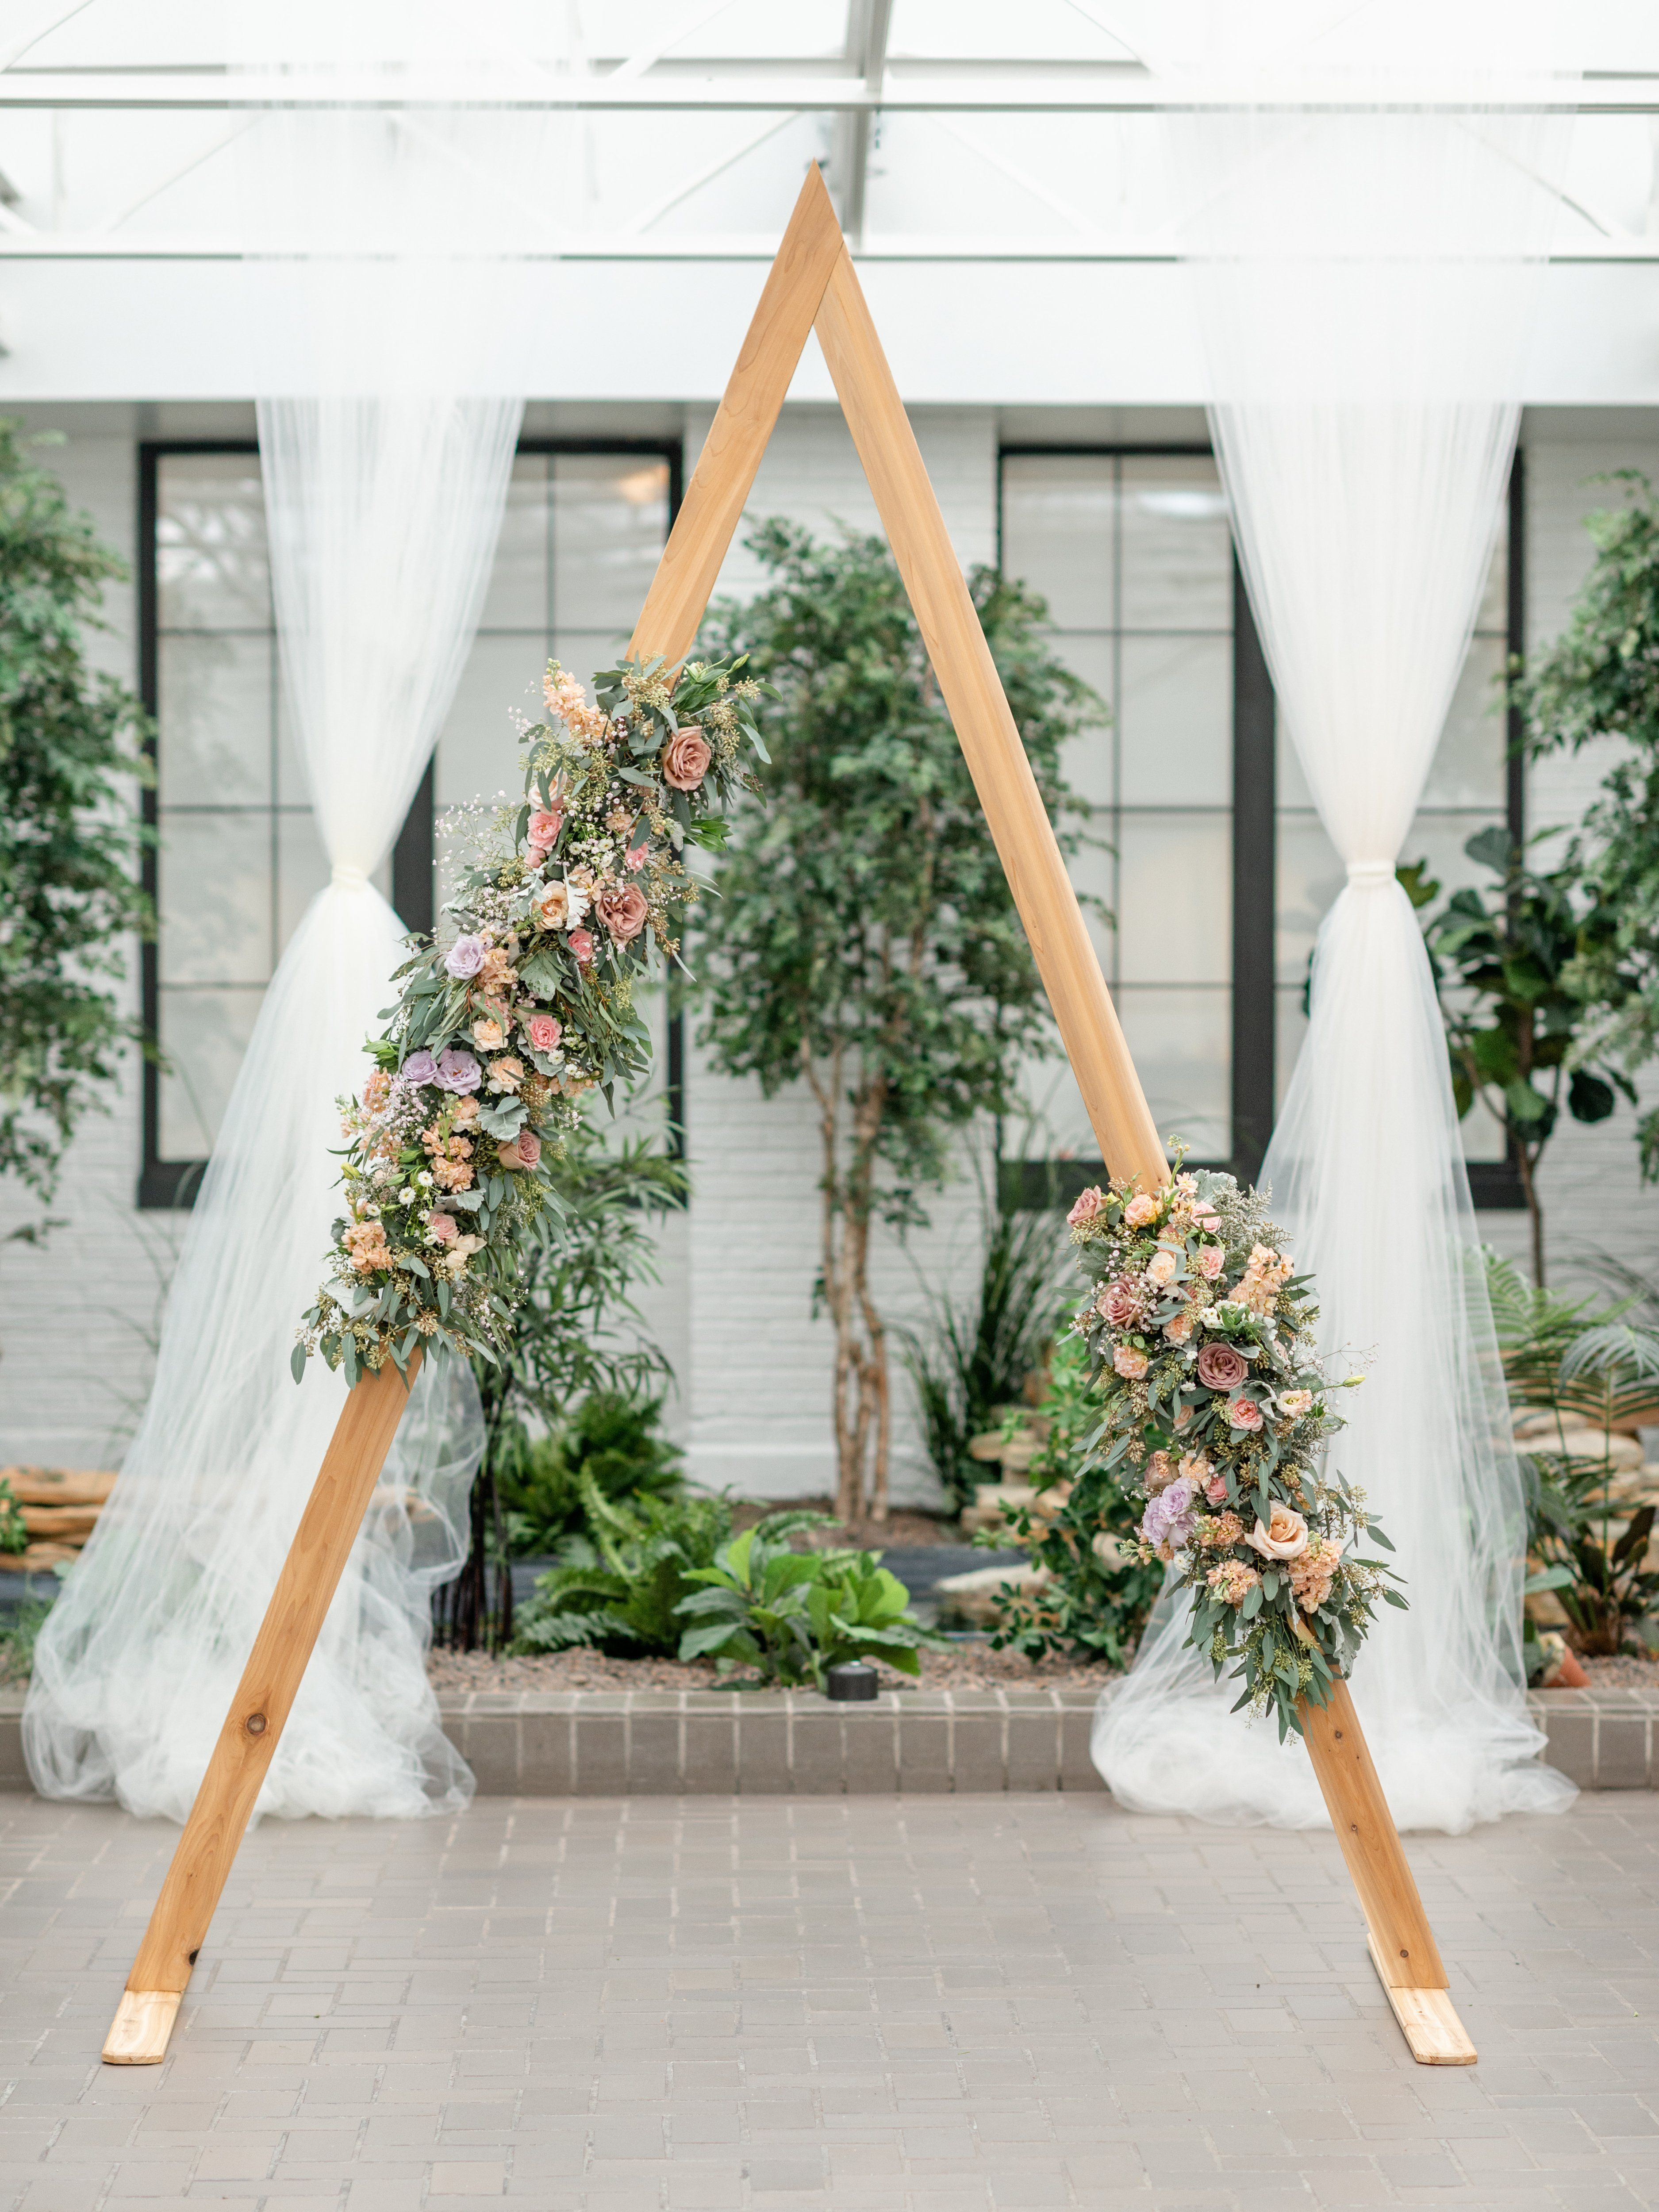 Pin On Wedding Arches Arbors Altars Backdrops